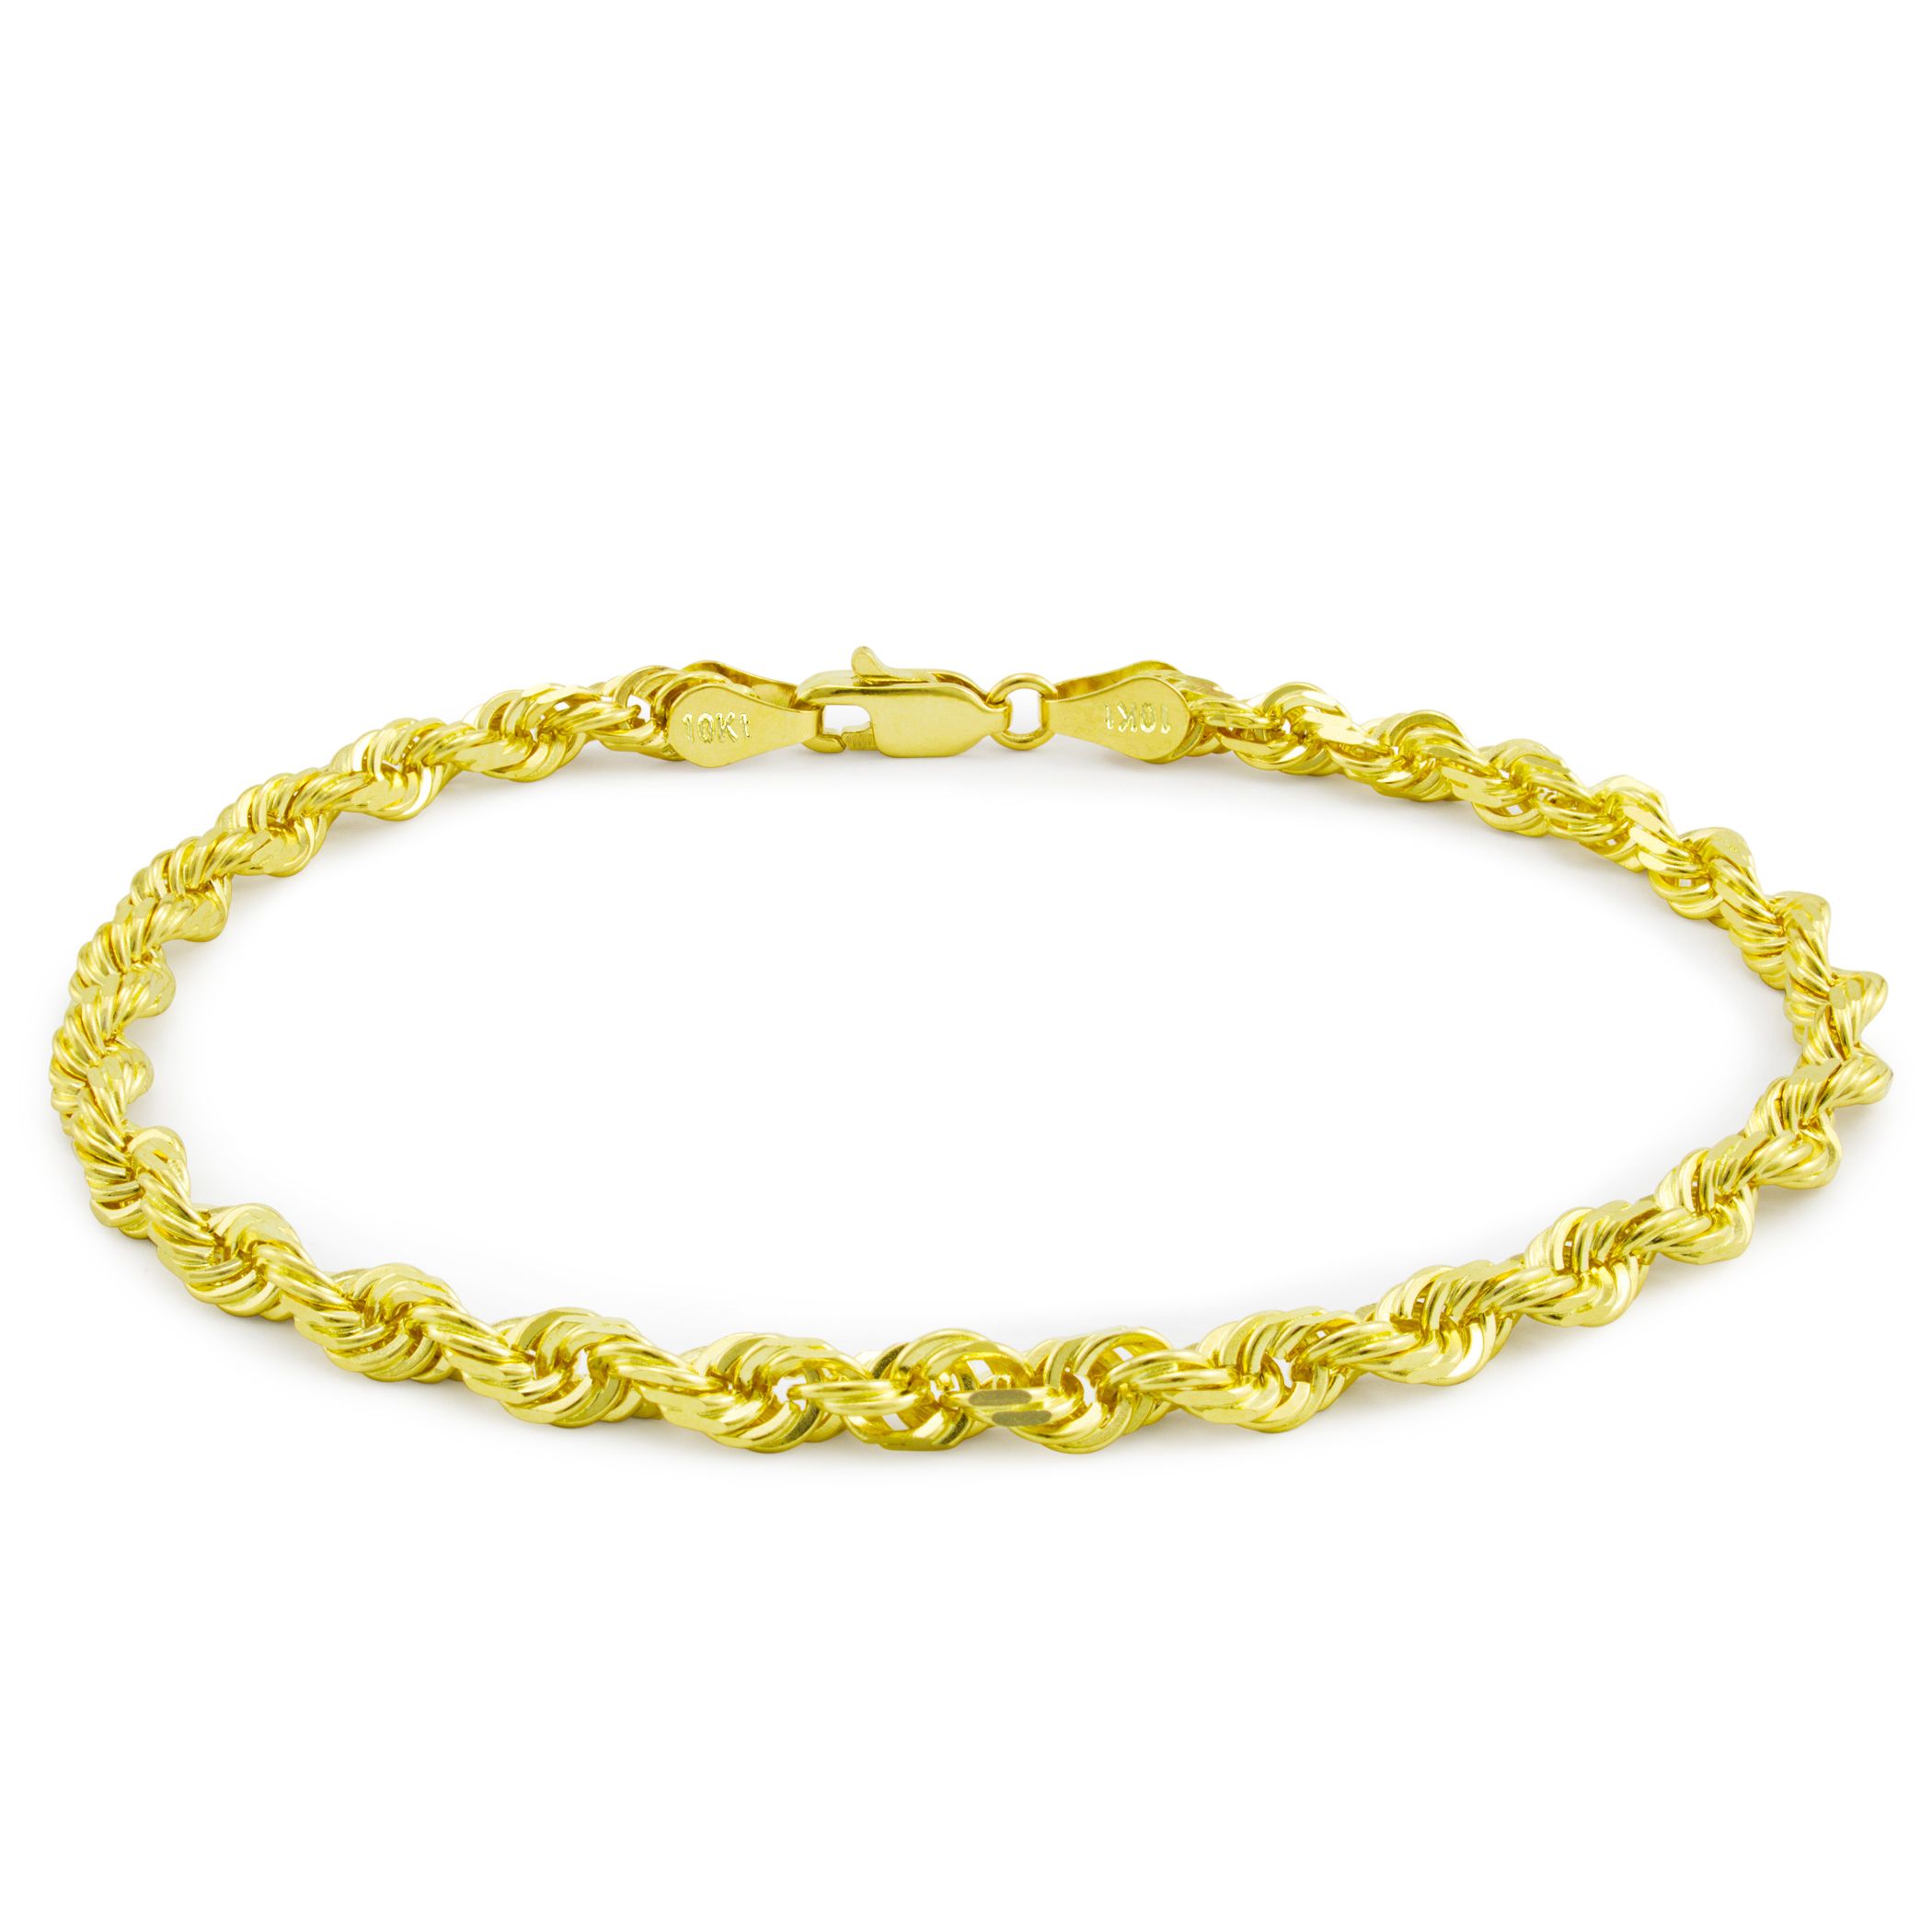 21k Yellow Gold Unisex 21mm Solid Rope Chain Bracelet or Anklet, 21